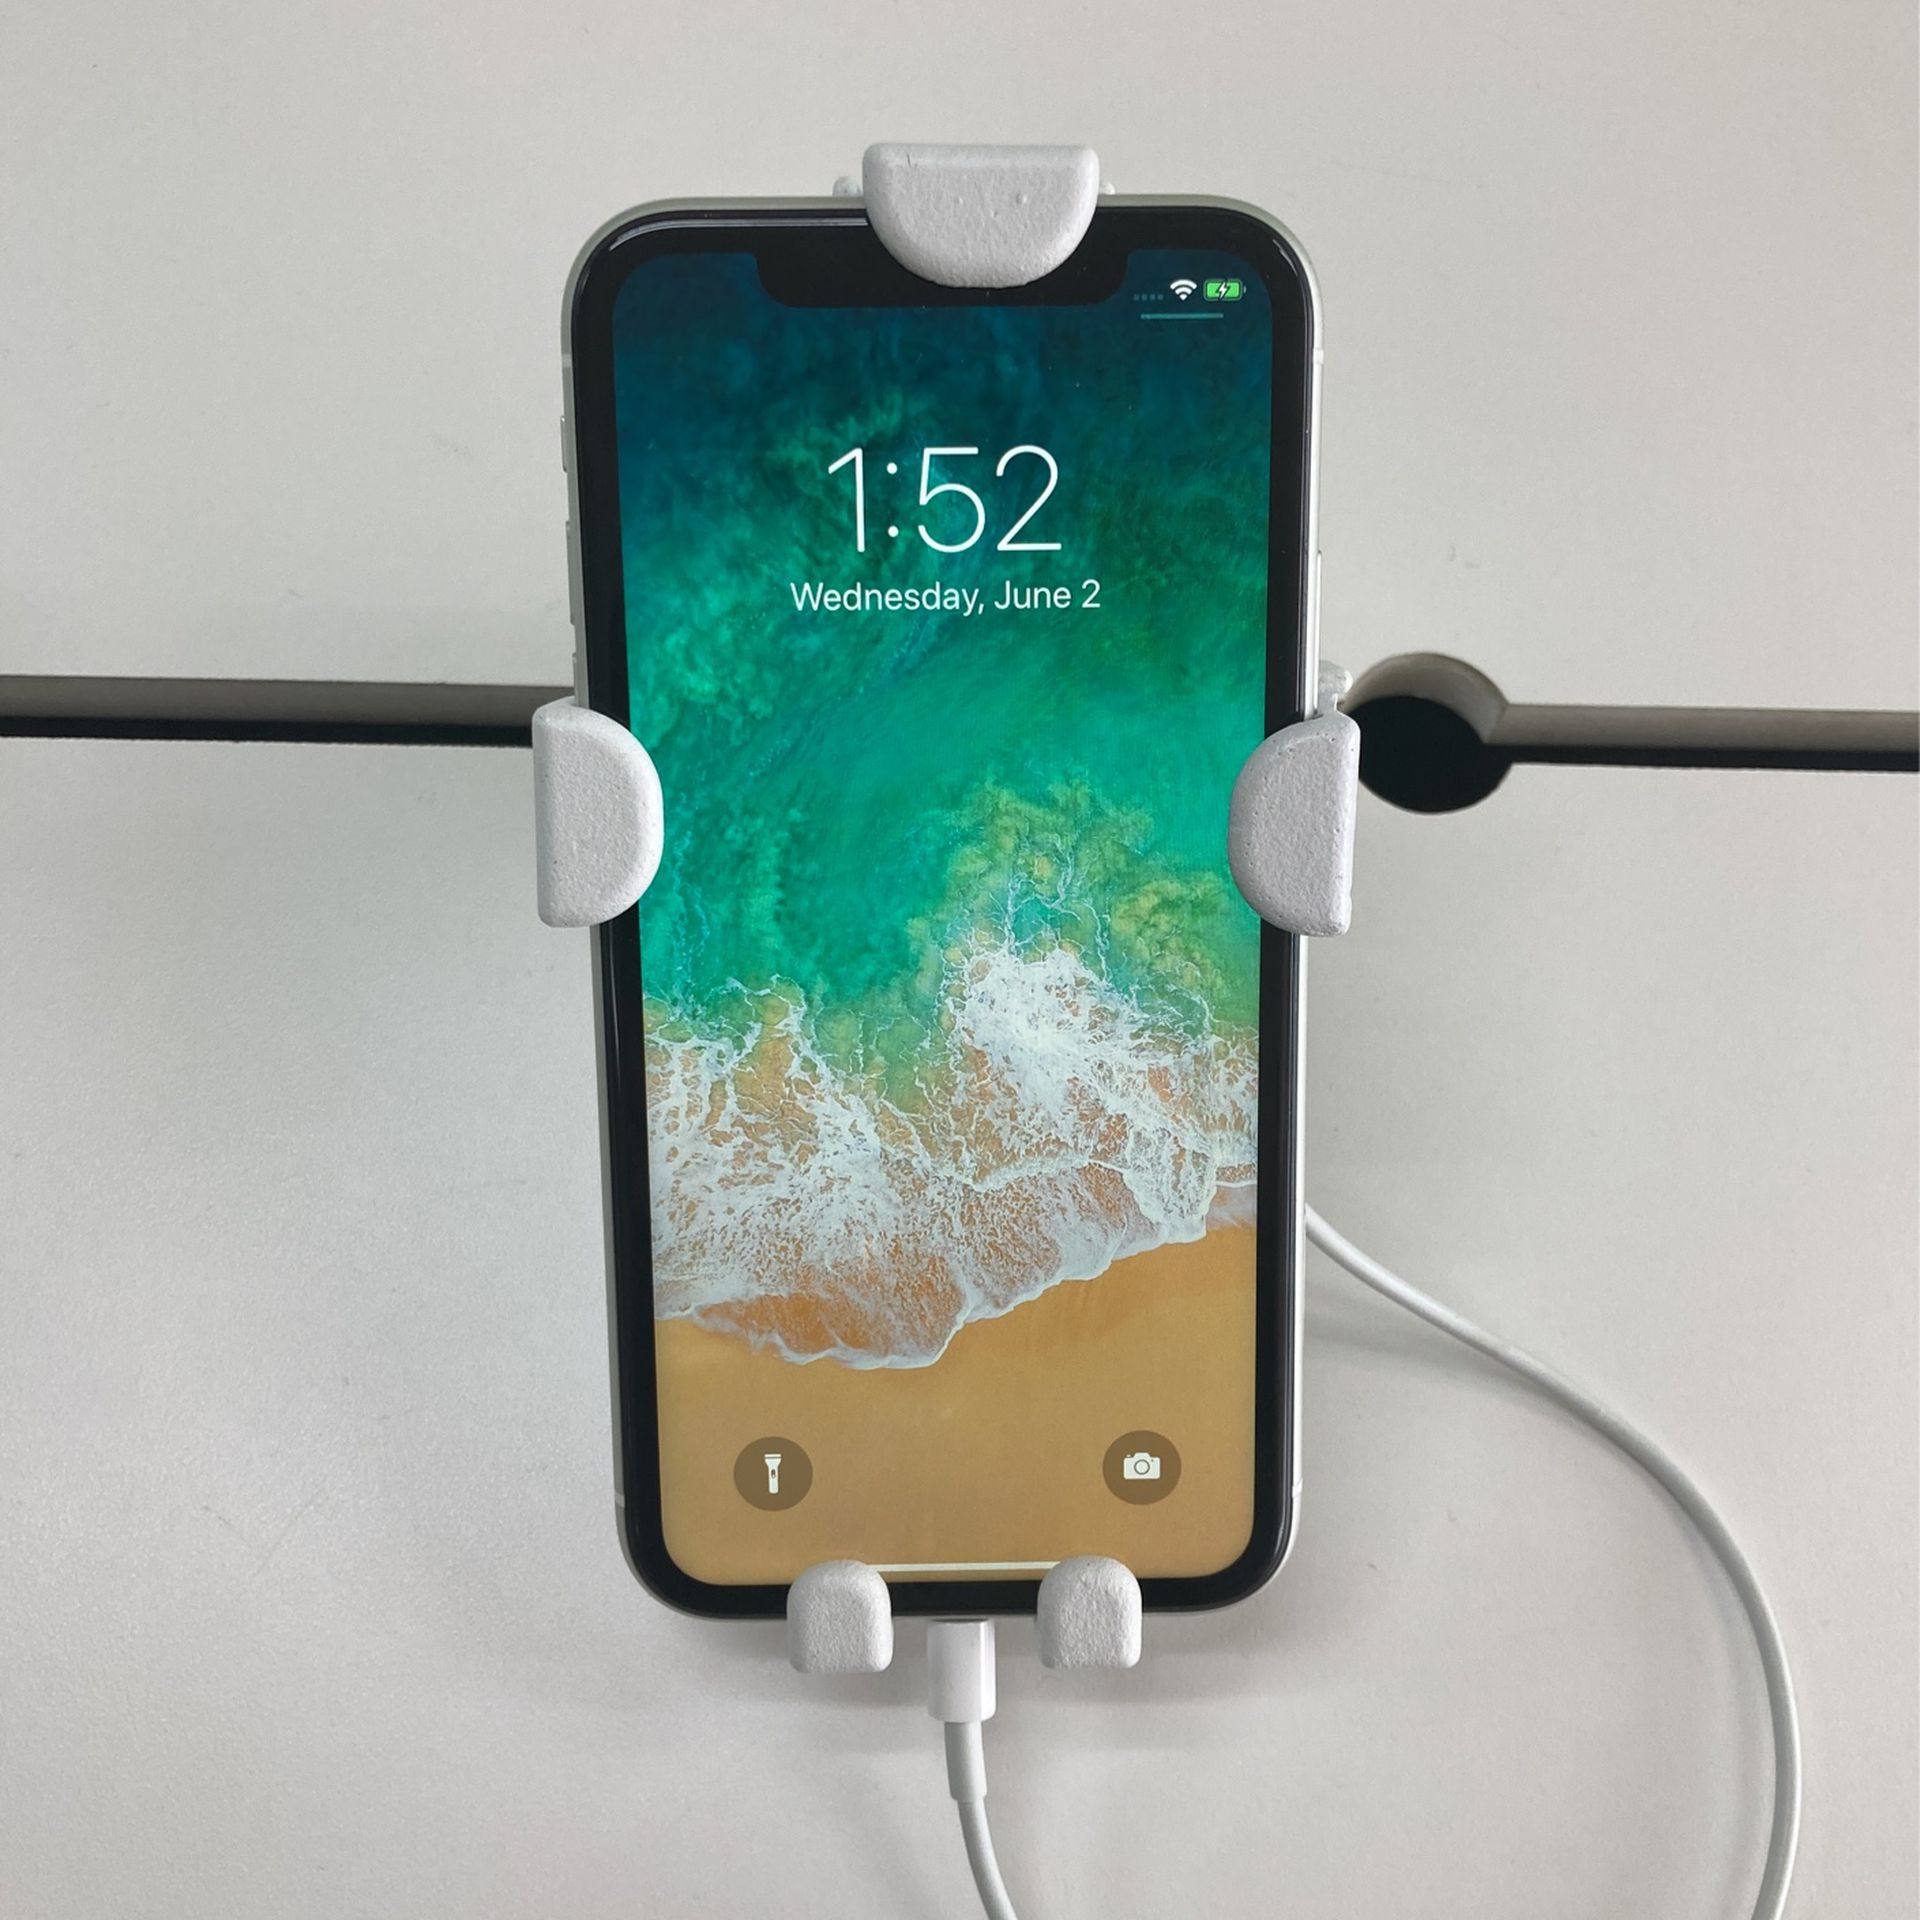 iPhone XR At Cricket Wireless On South Bryant